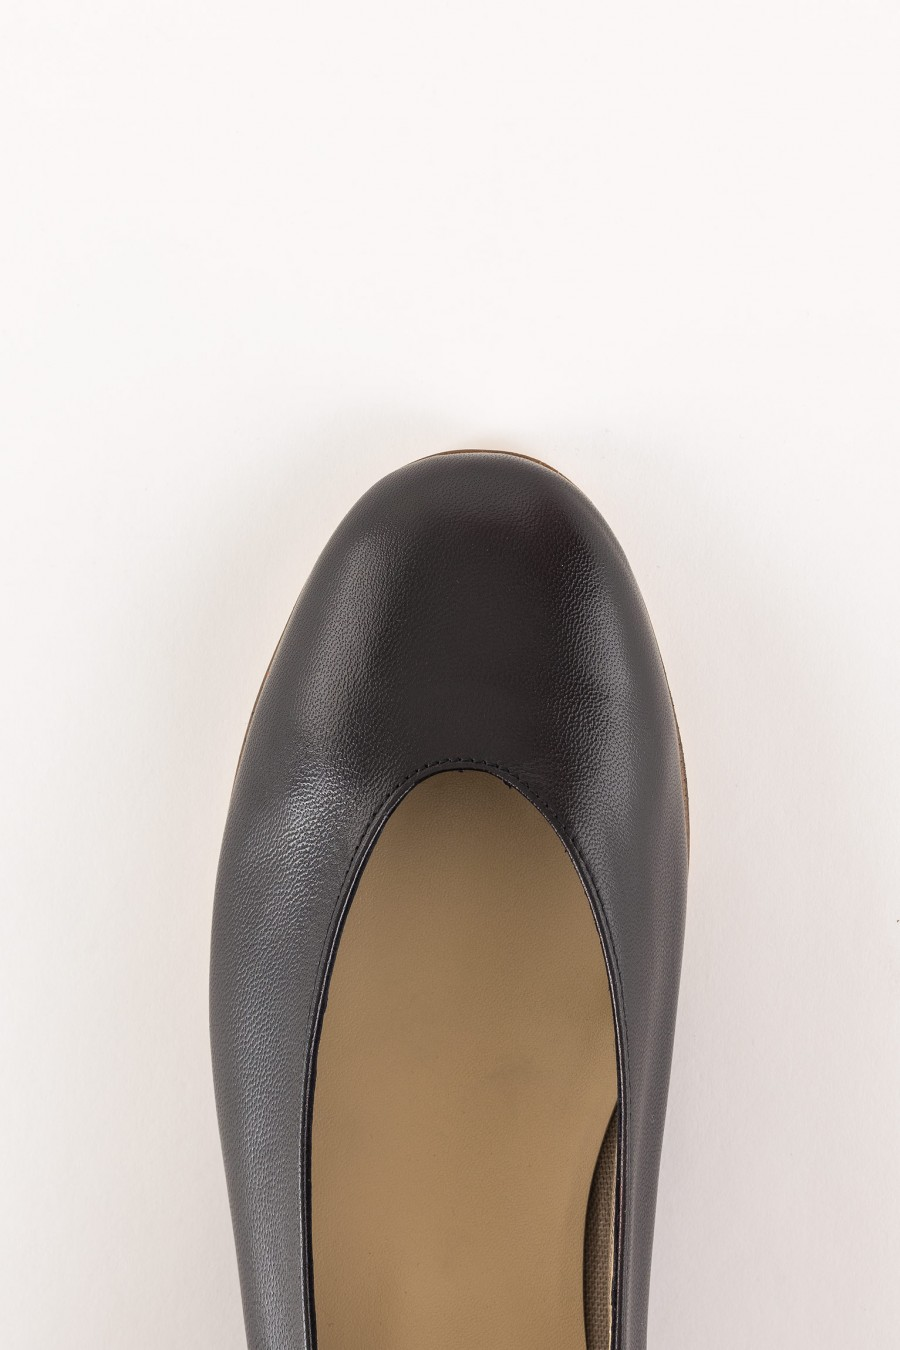 black rounded shoes